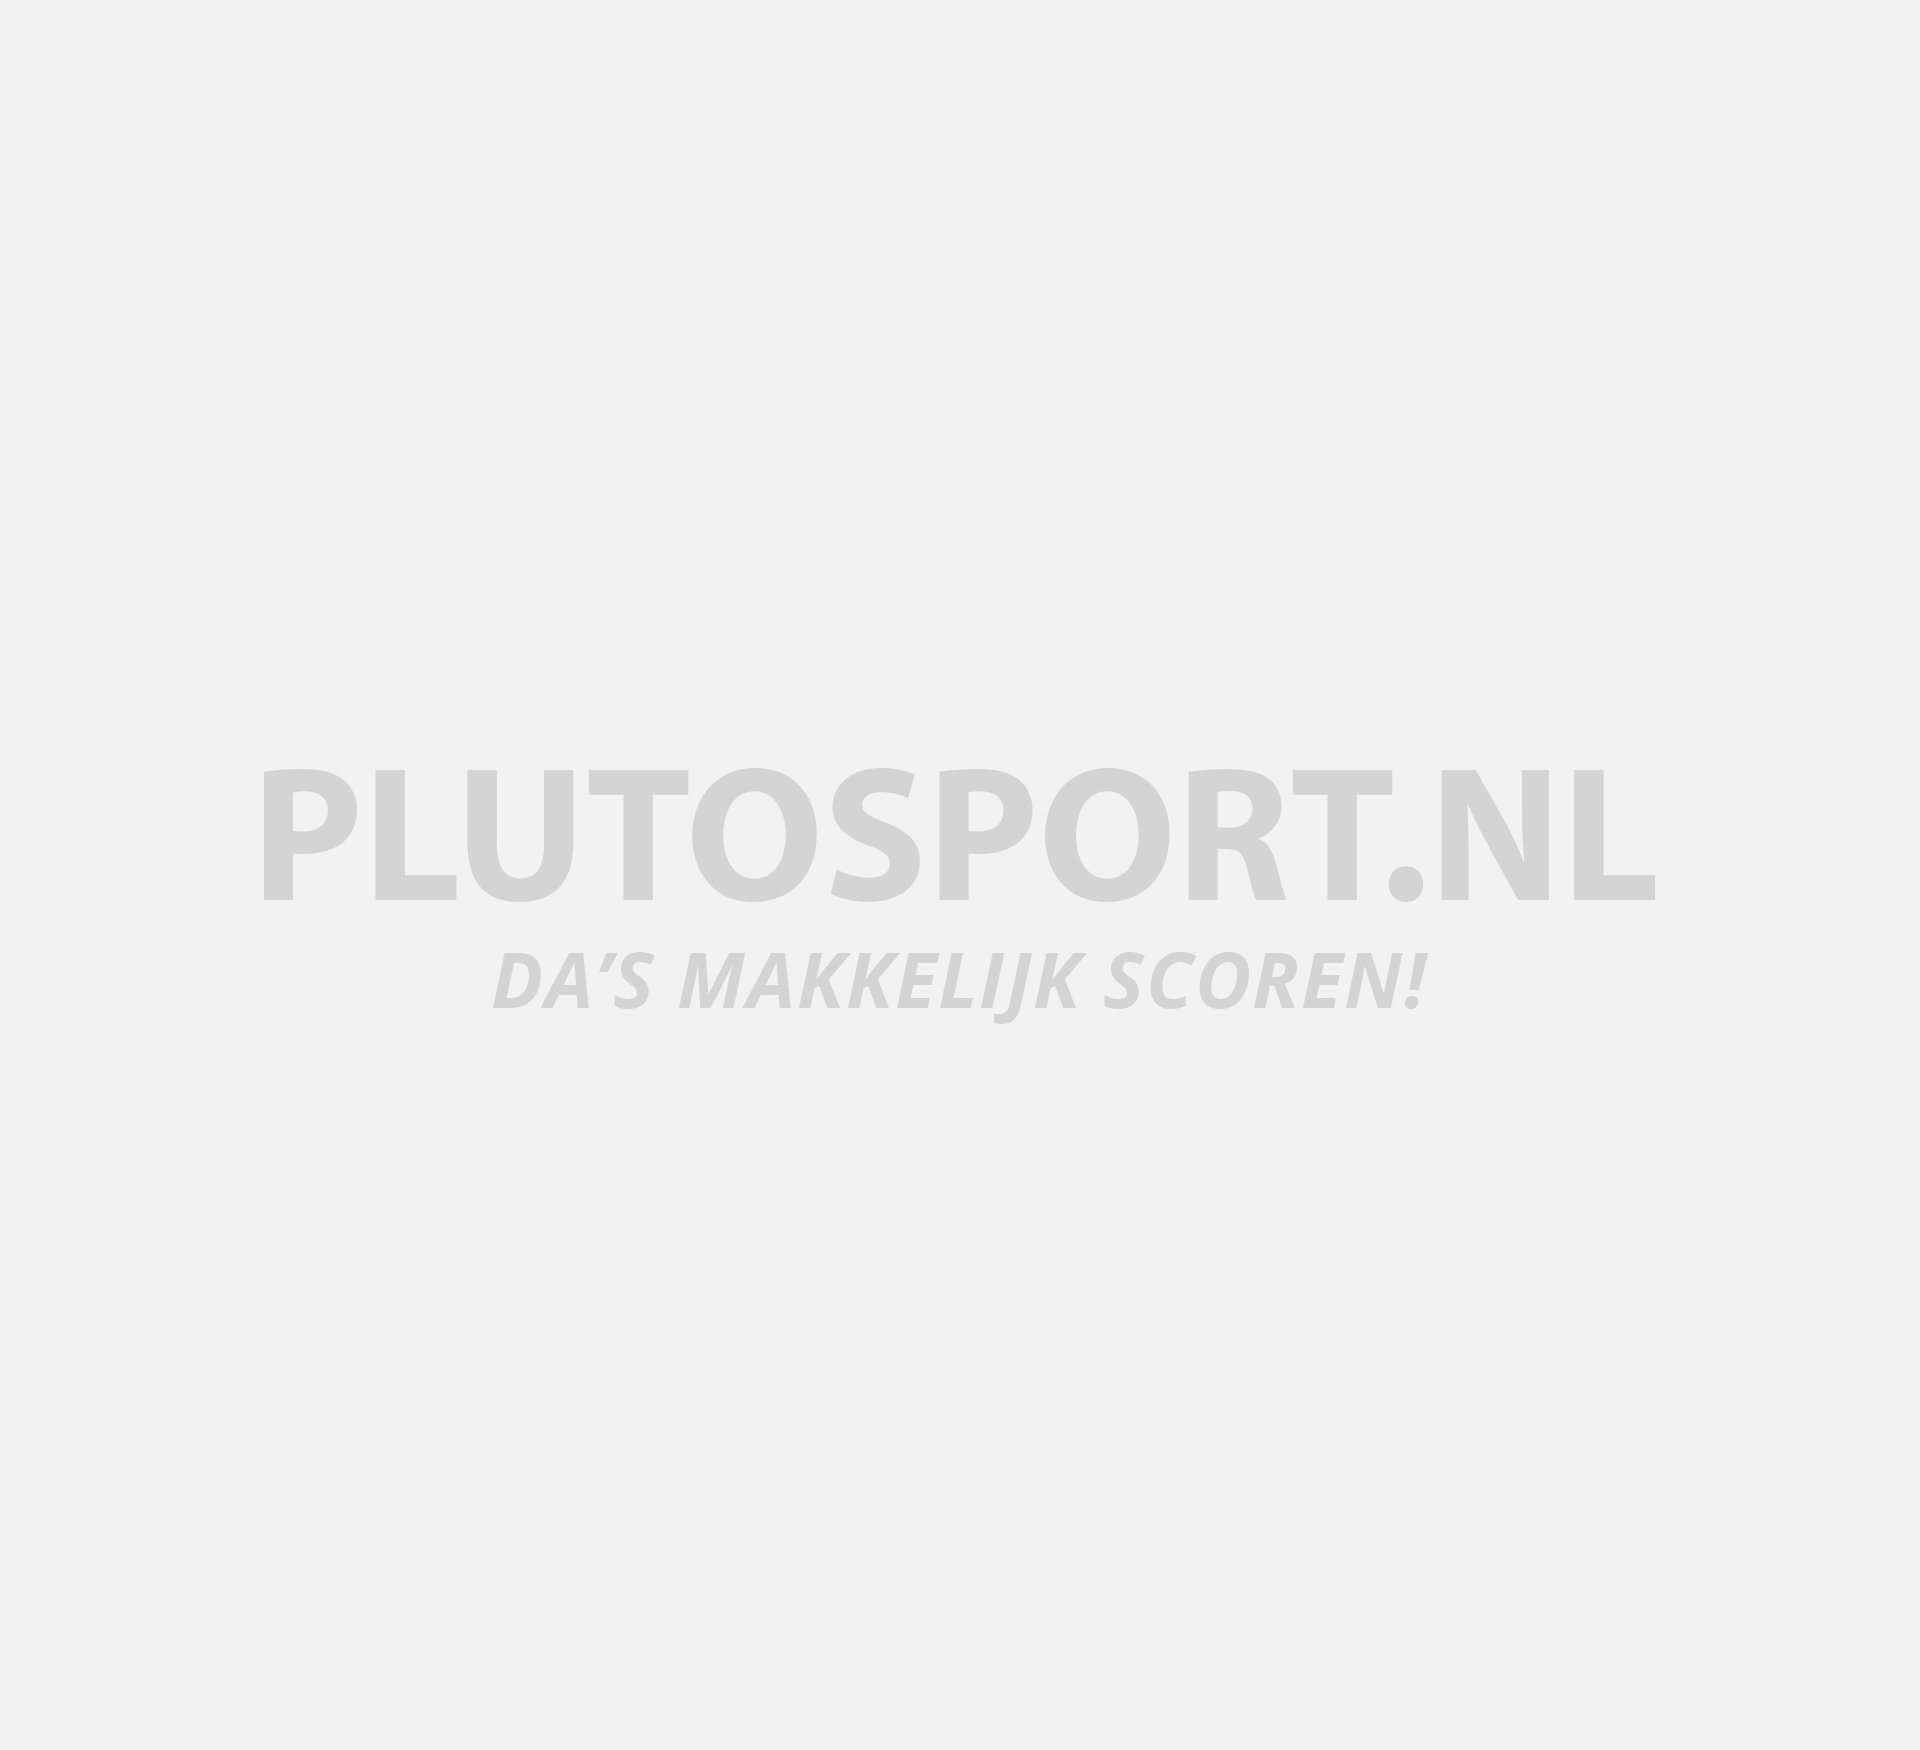 Oakley O2 - Goggle / Skibril - XL - Matte Black / H.I. Yellow & Dark Grey